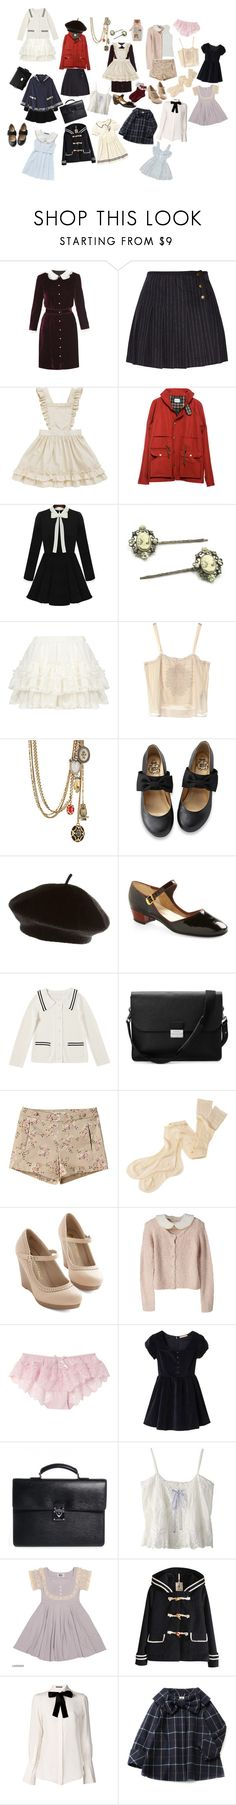 """""""Presh bb"""" by kyara-quesada ❤ liked on Polyvore featuring D&G, See by Chloé, Steven Alan, Cameo, Jill Stuart, Alexander McQueen, Lowie, Aspinal of London, Margaret Howell and Louis Vuitton"""